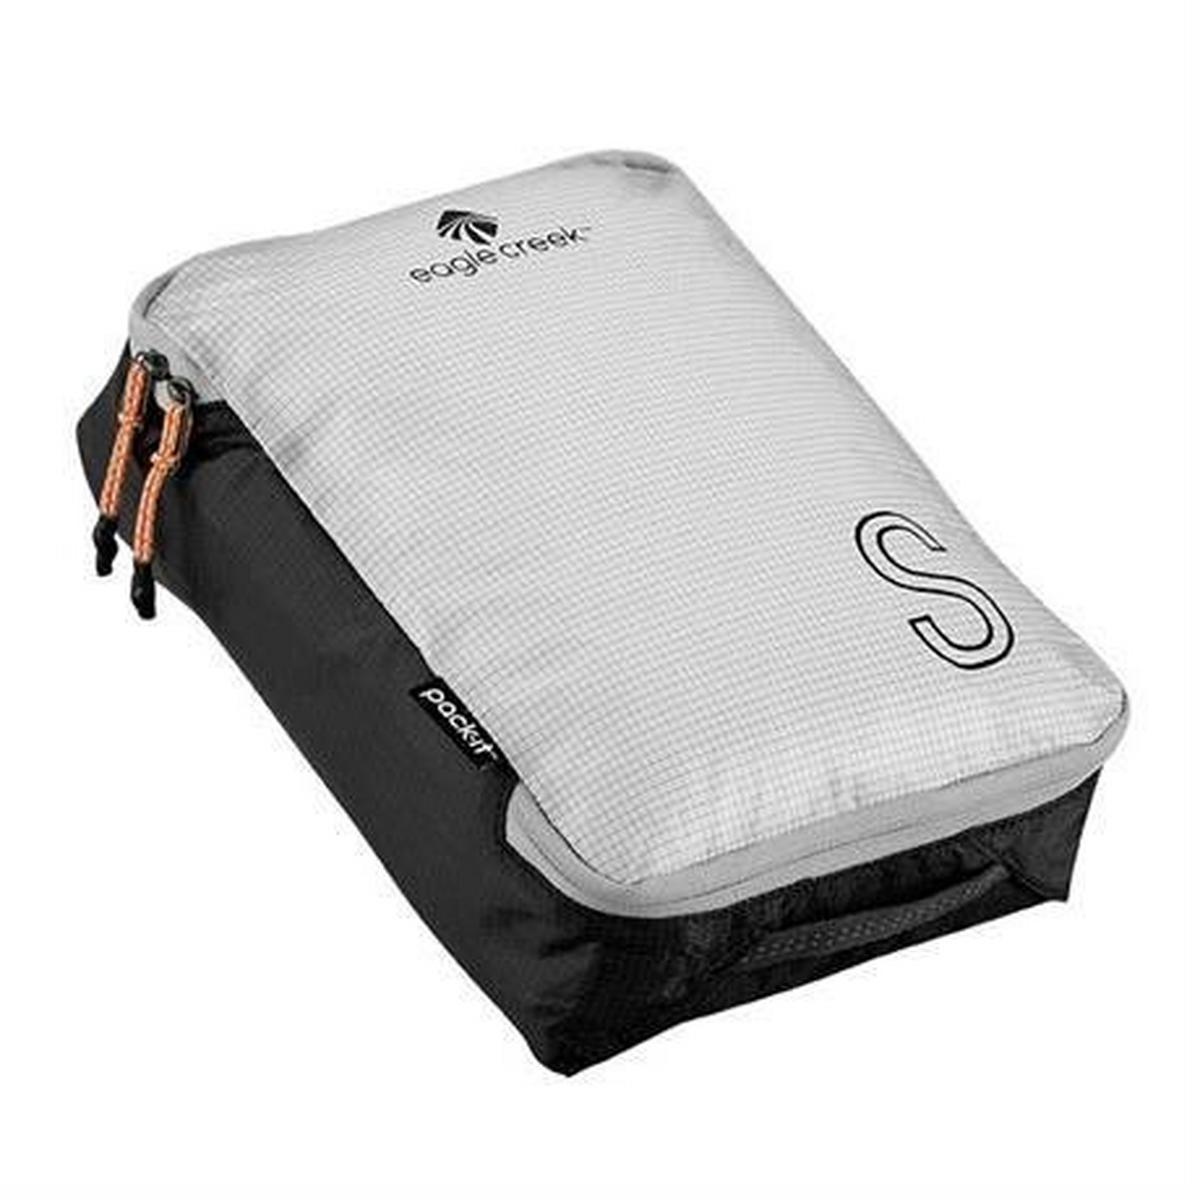 Eagle Creek Travel Luggage: Pack-It Specter Tech Cube SMALL Black/White